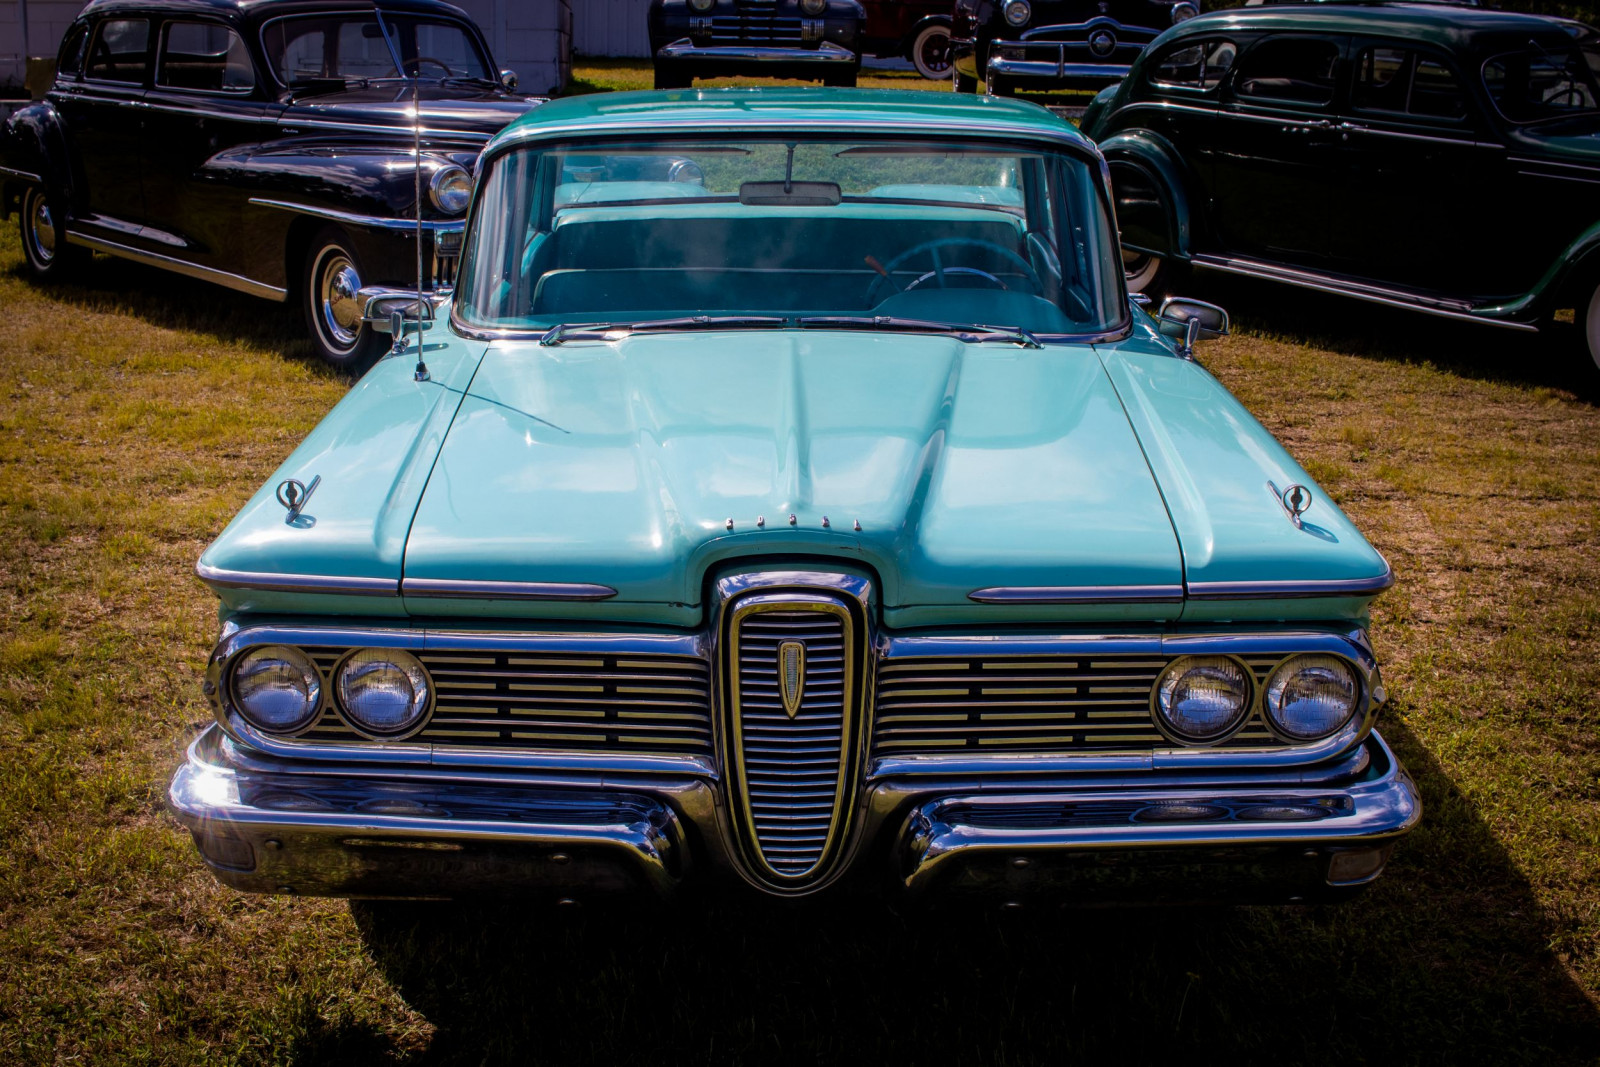 1959 Edsel Corsair 4dr Sedan - Image 2